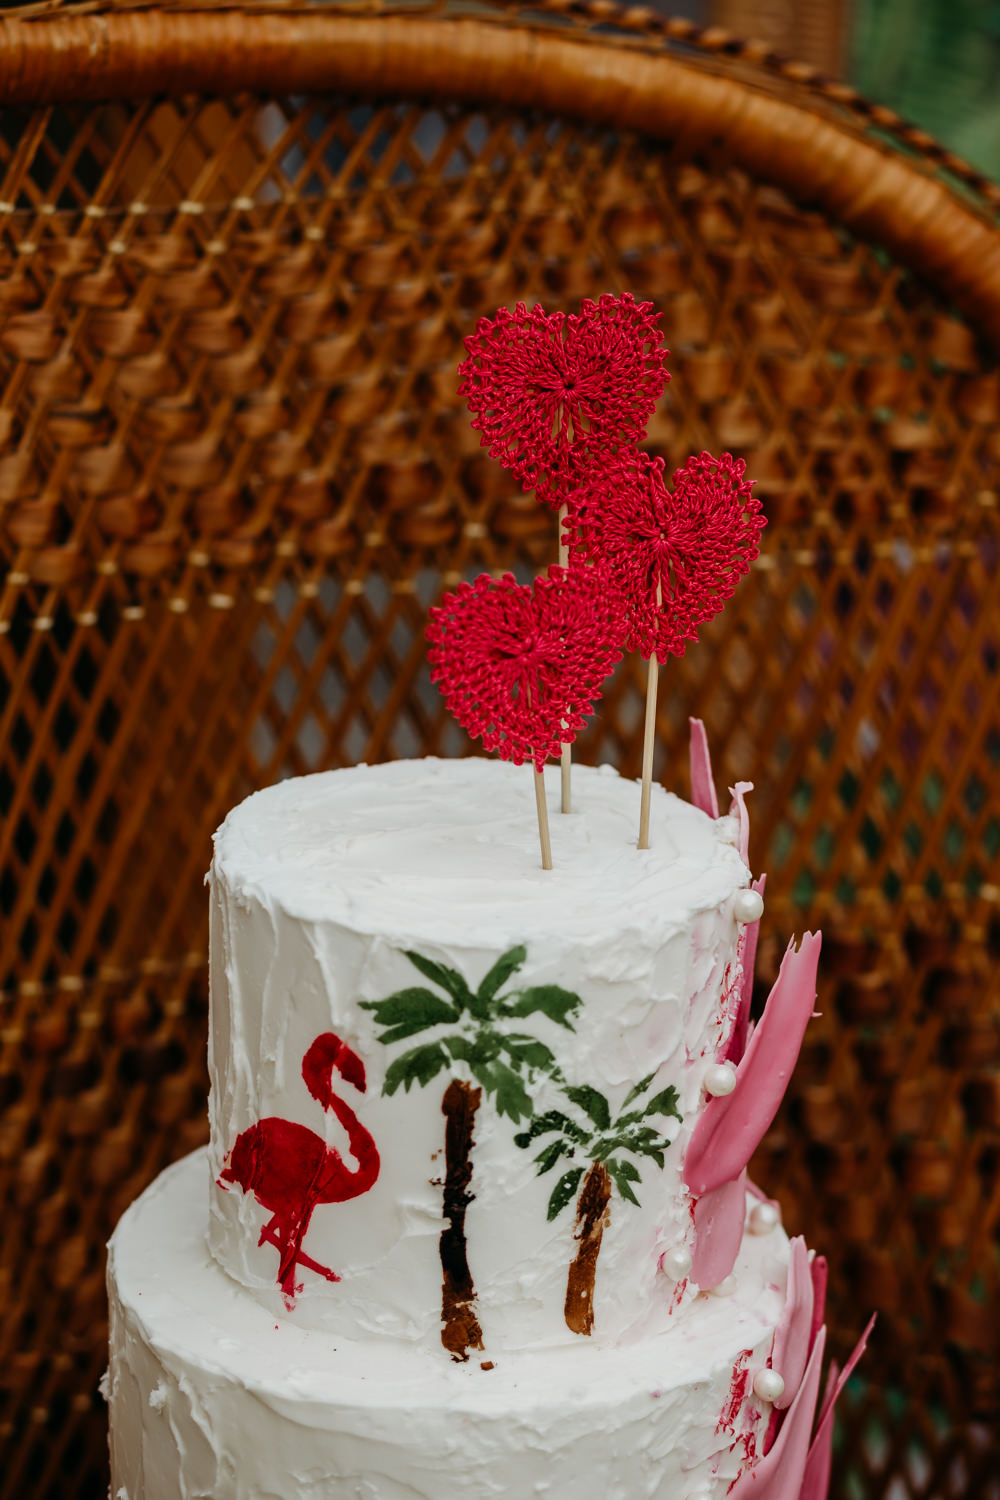 Cake Buttercream Flamingos Brush Strokes Palm Trees Crochet Heart Topper Tropical Wedding Ideas When Charlie Met Hannah